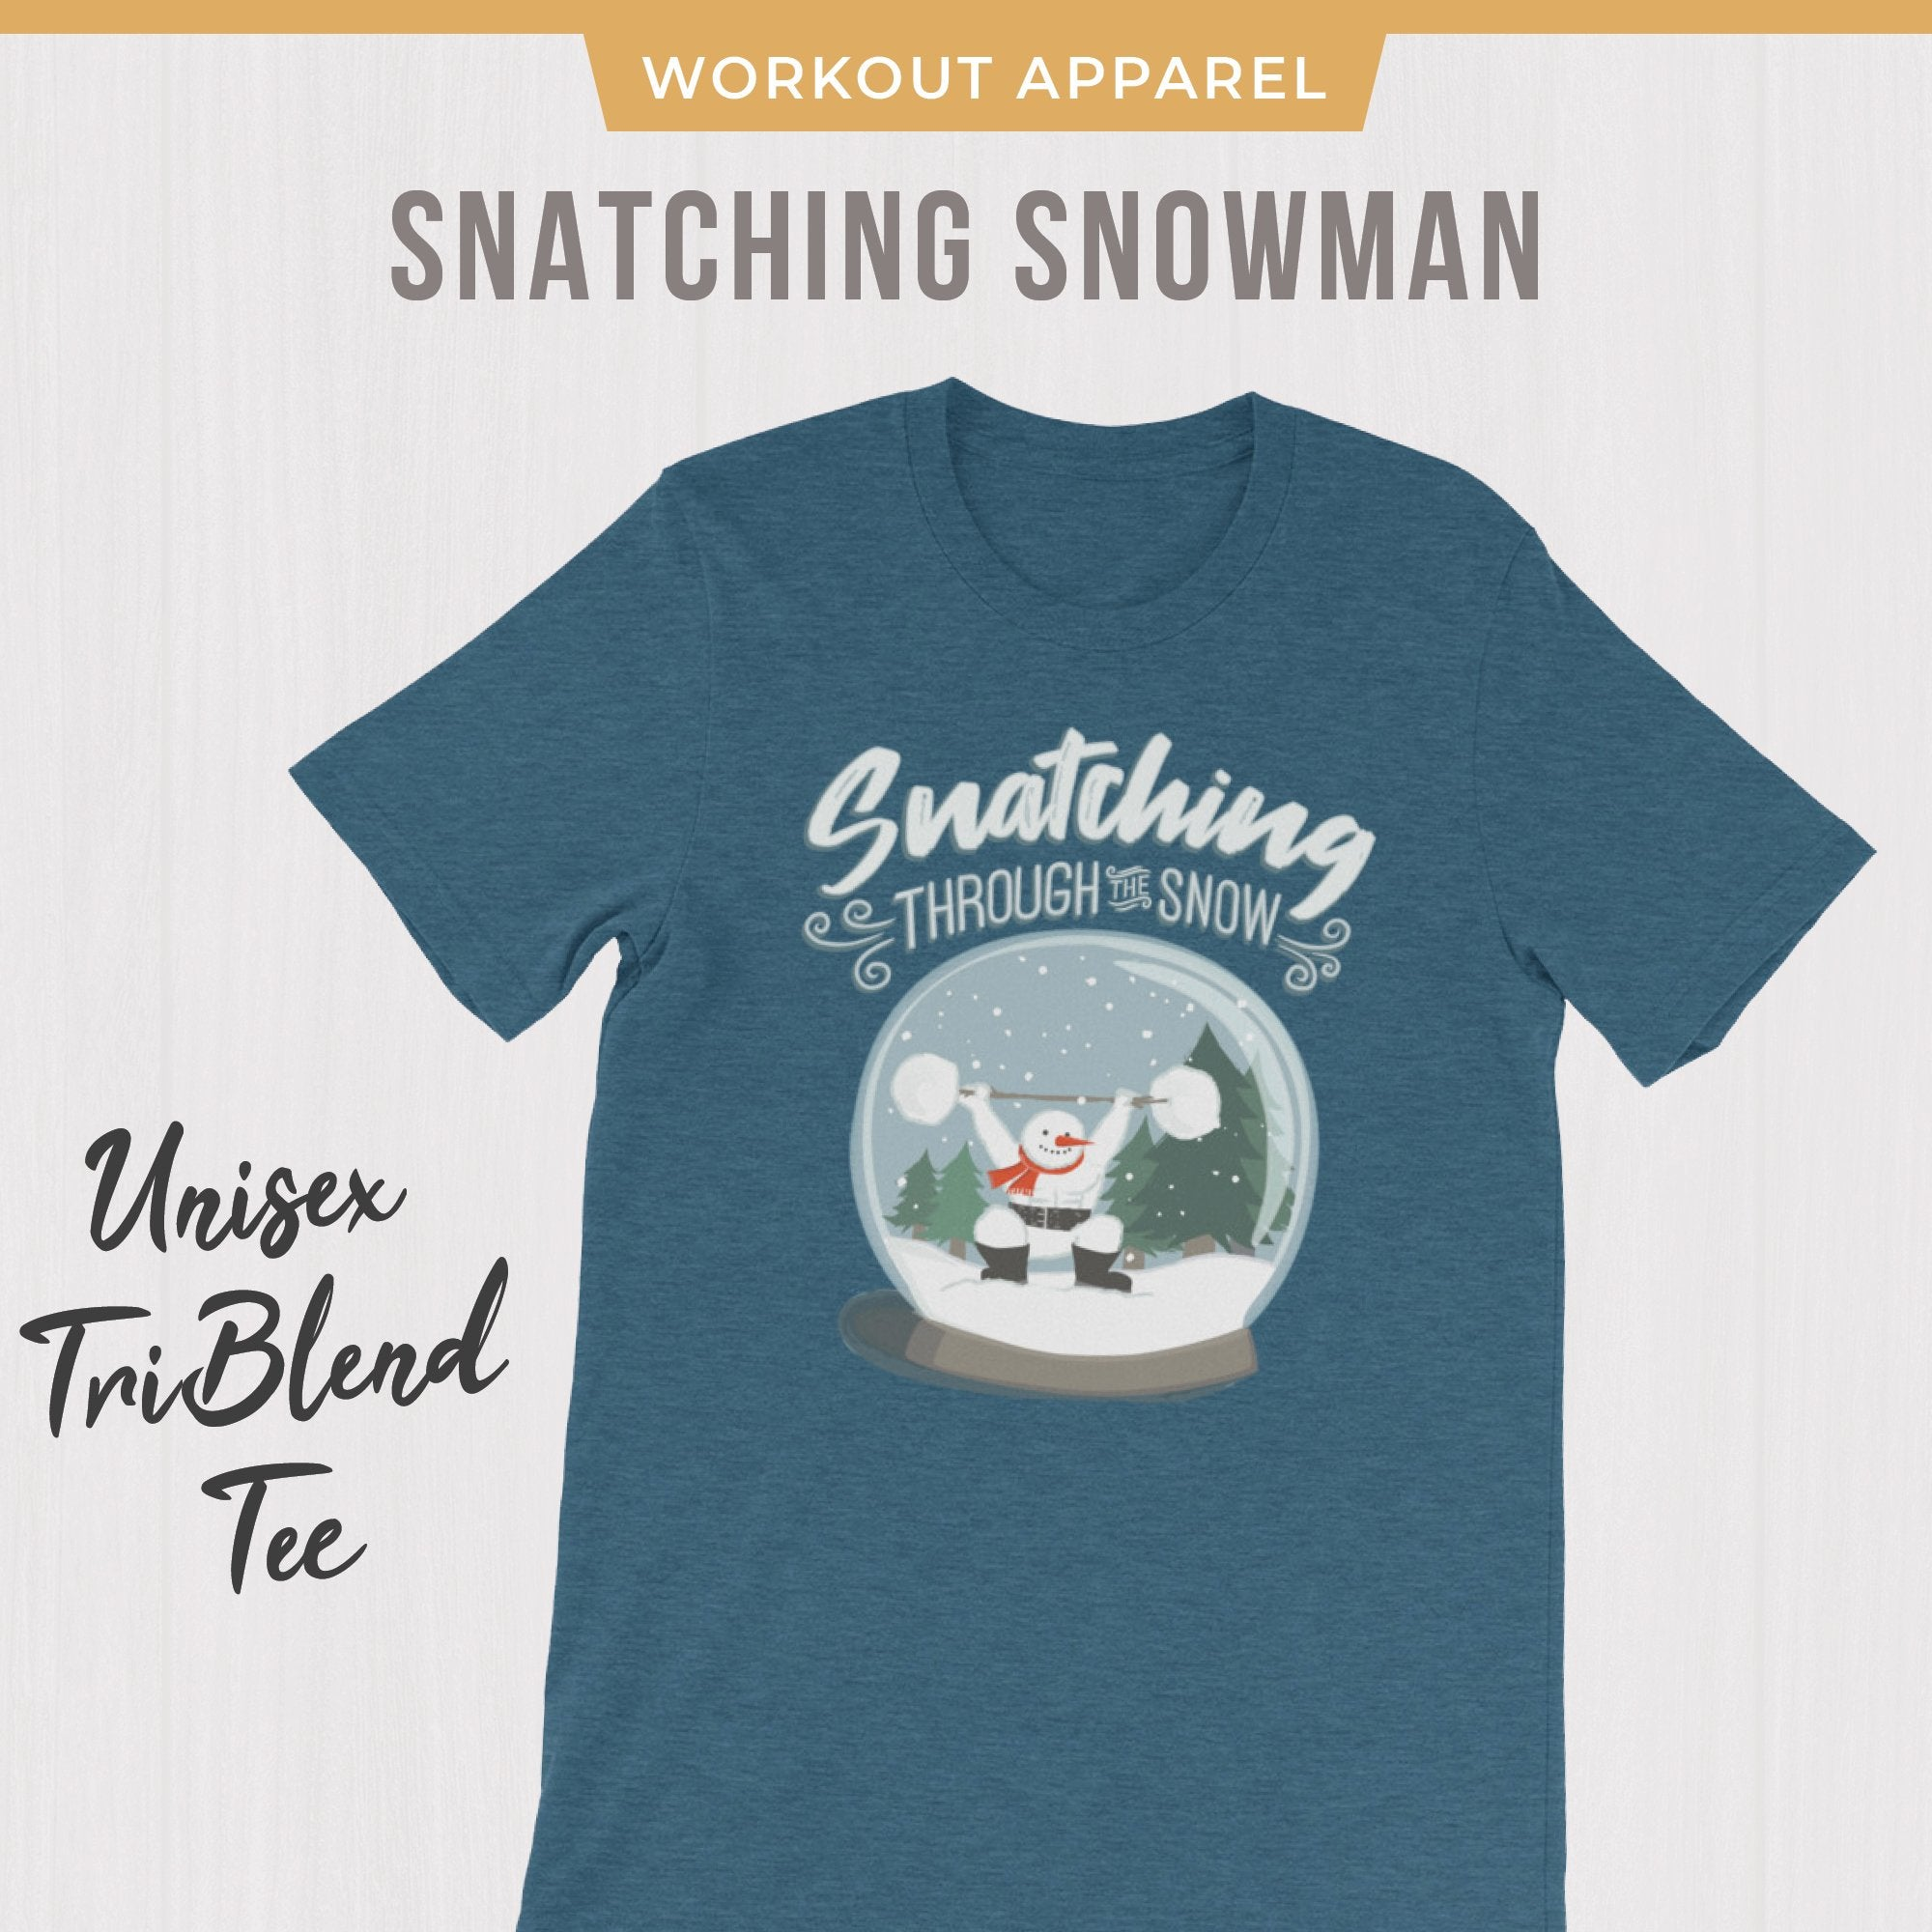 Bella 3001 Tri-blend Snatching Through the Snow CrossFit Holiday T-shirt